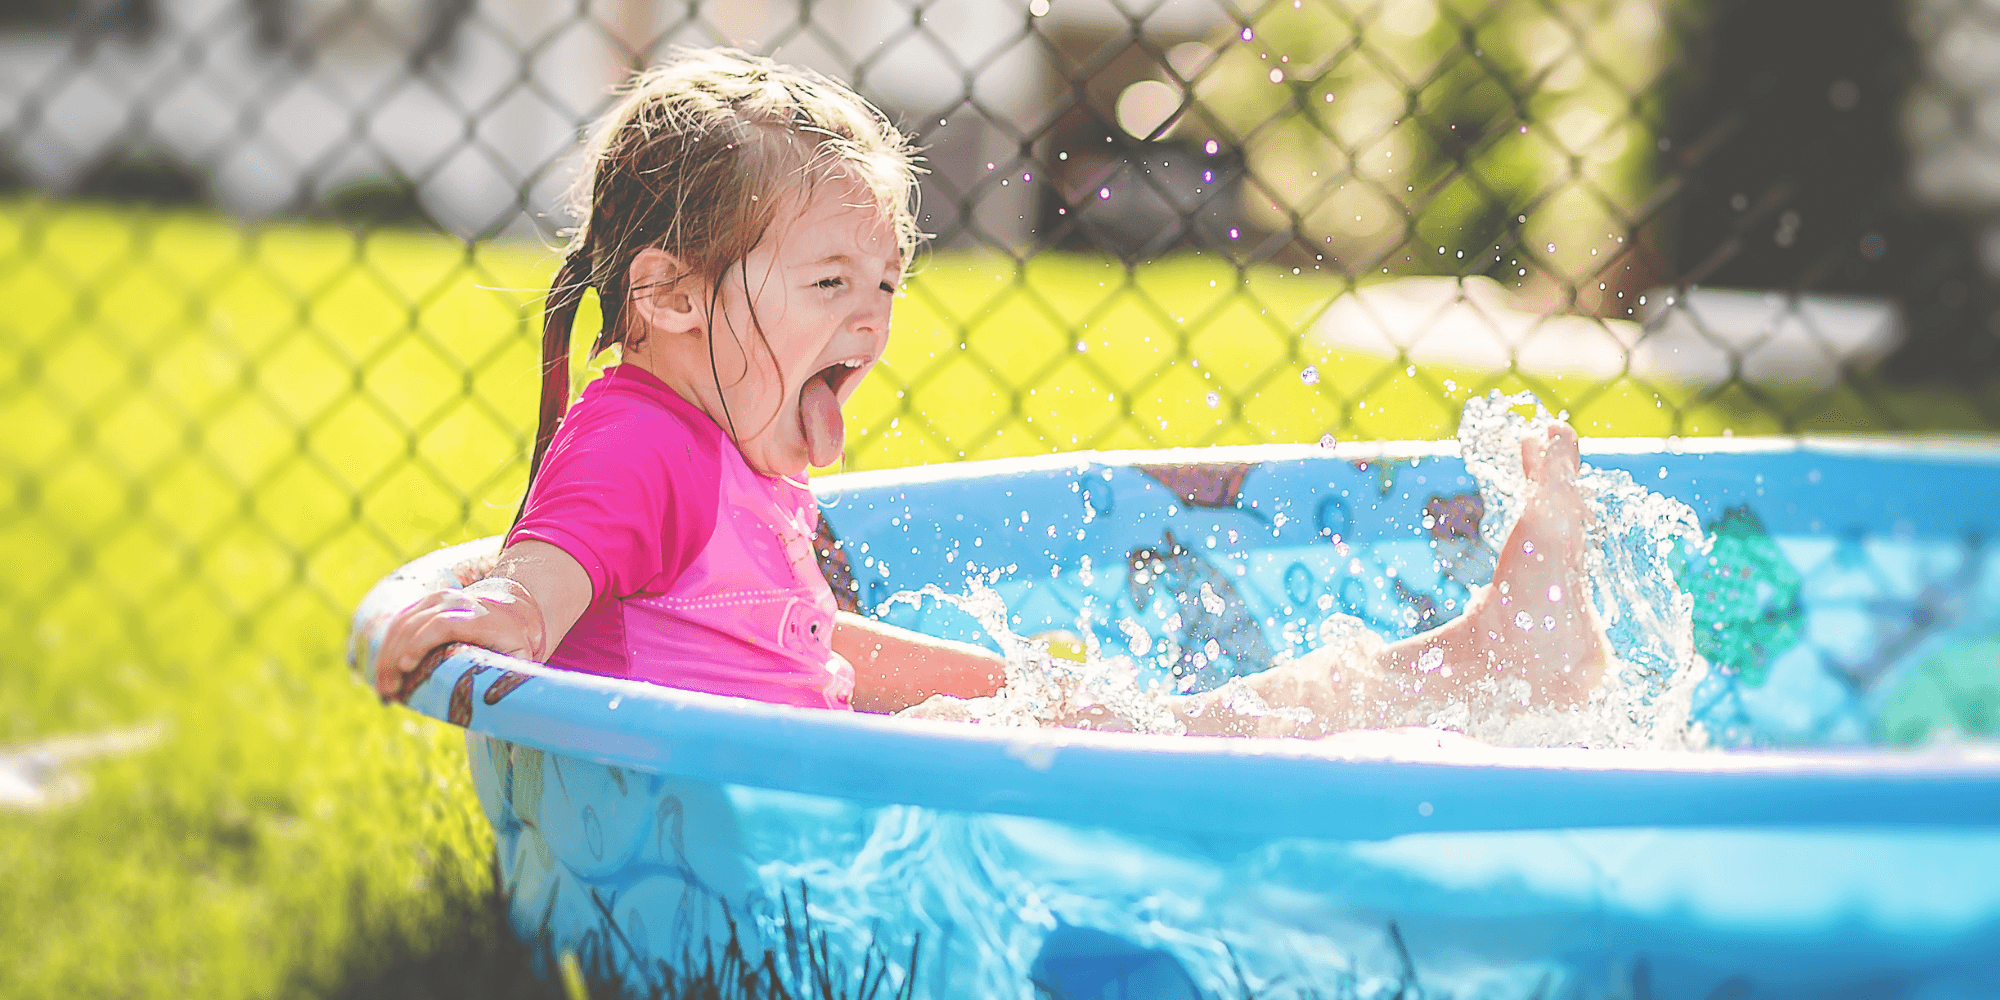 Little girl having fun in a paddling pool